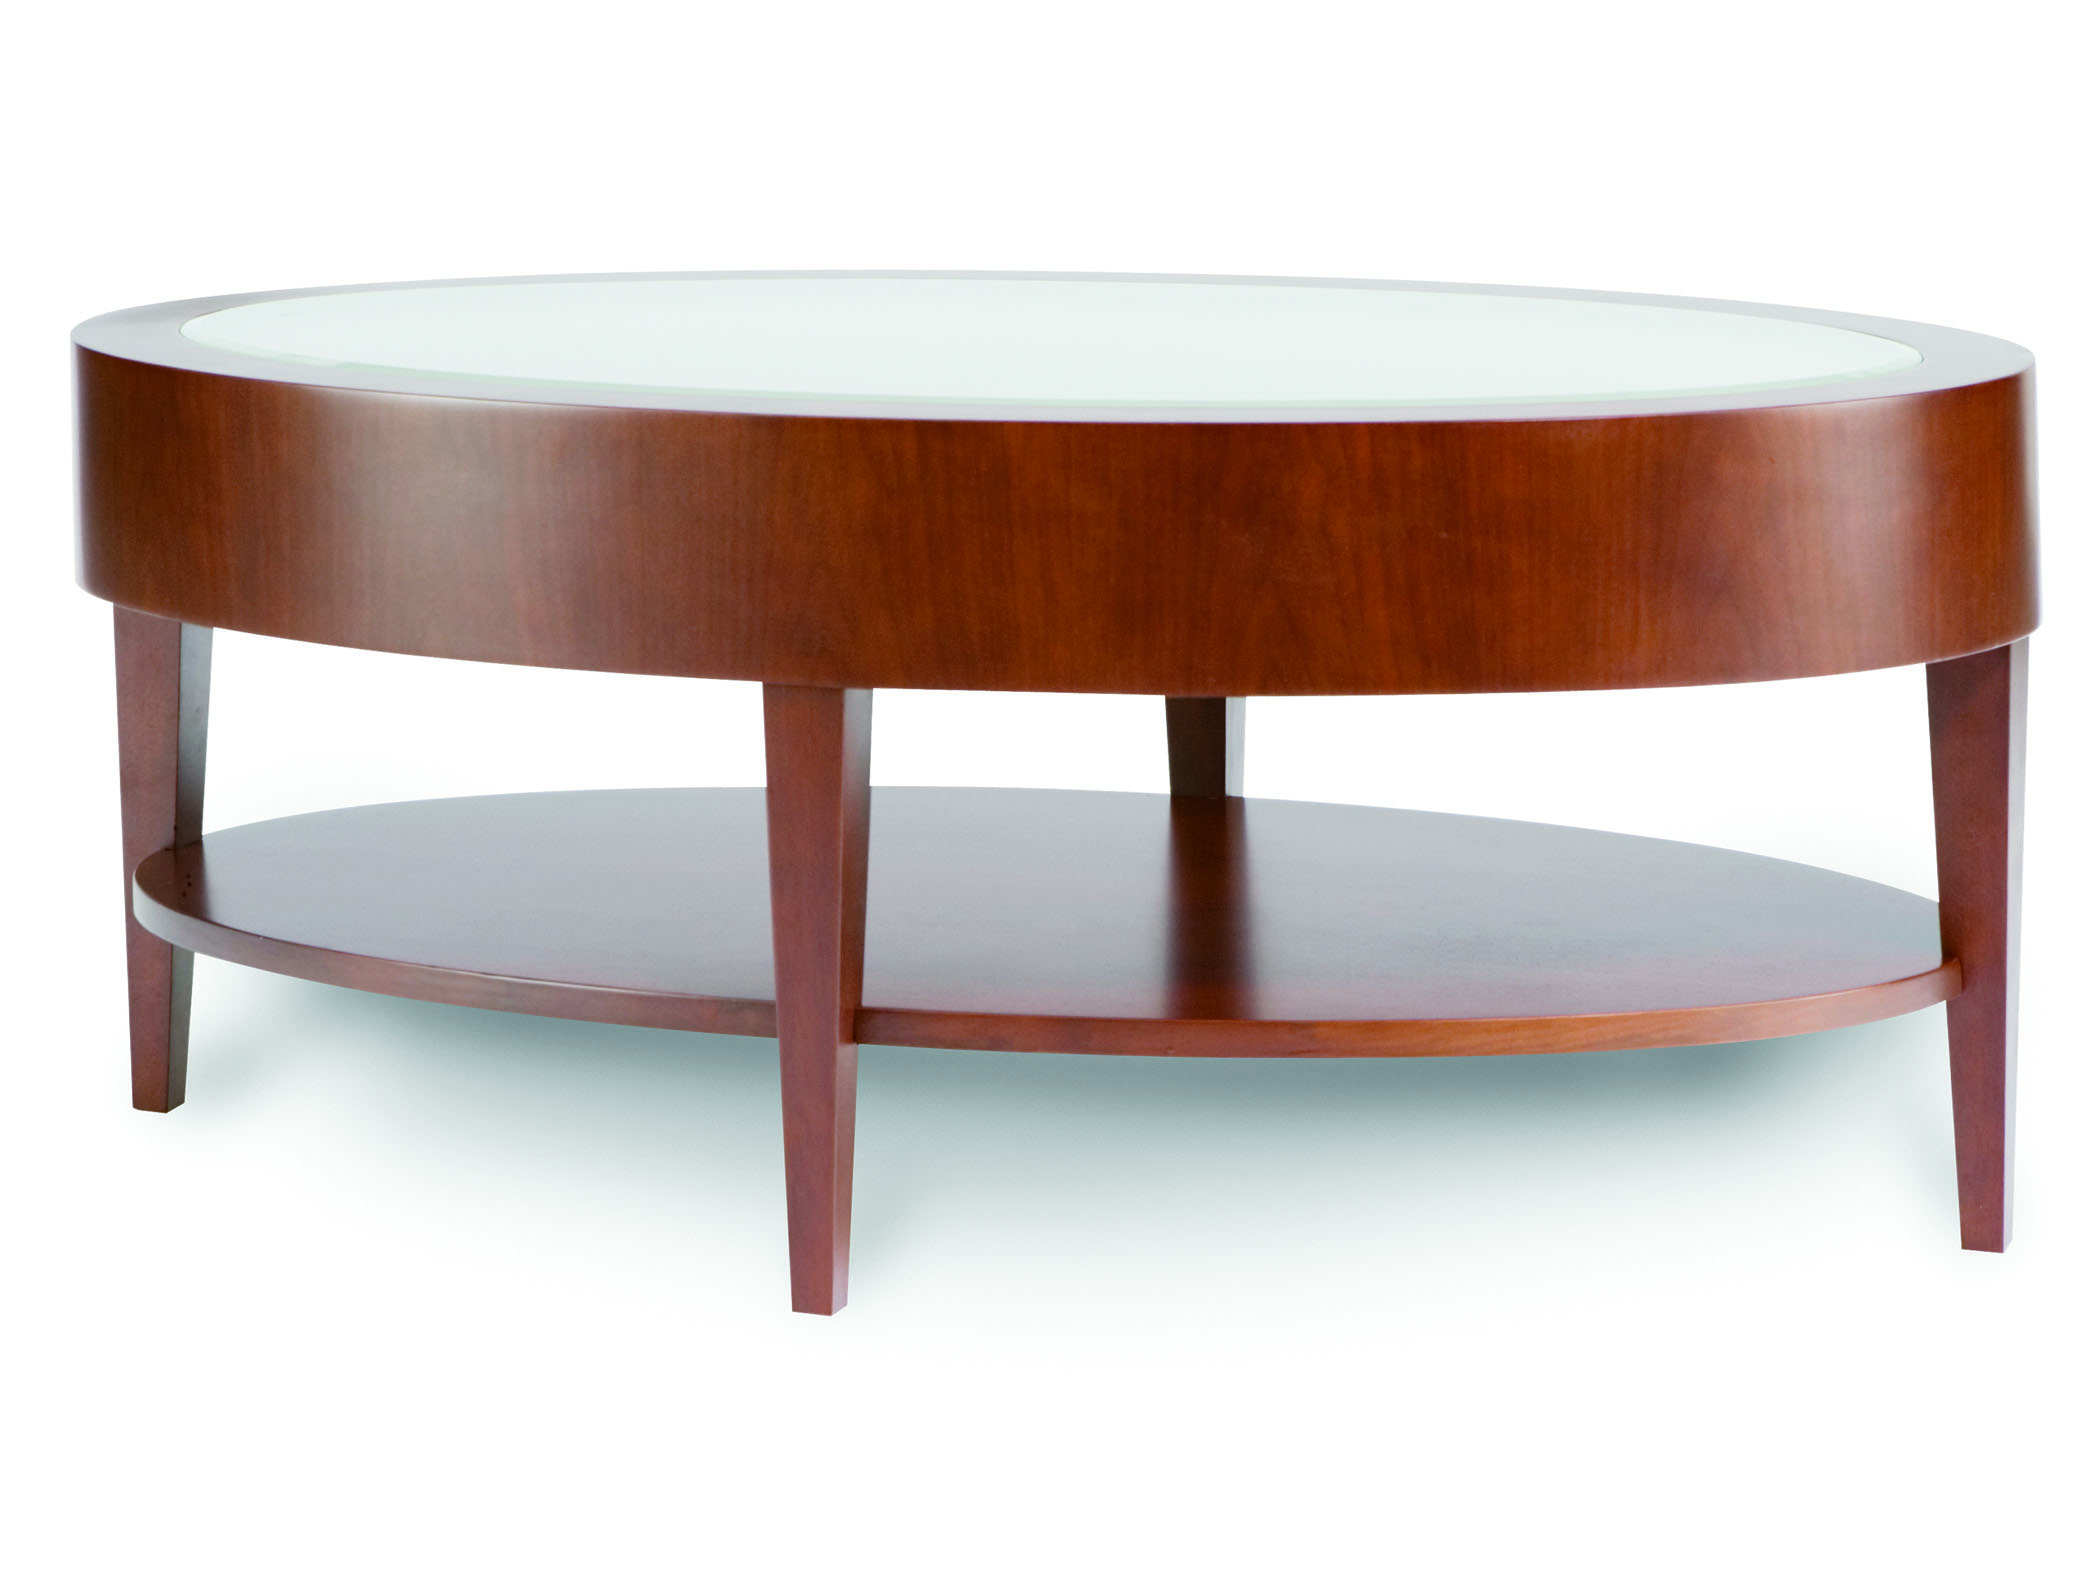 Reception Area Furniture From Compel   Empire Table